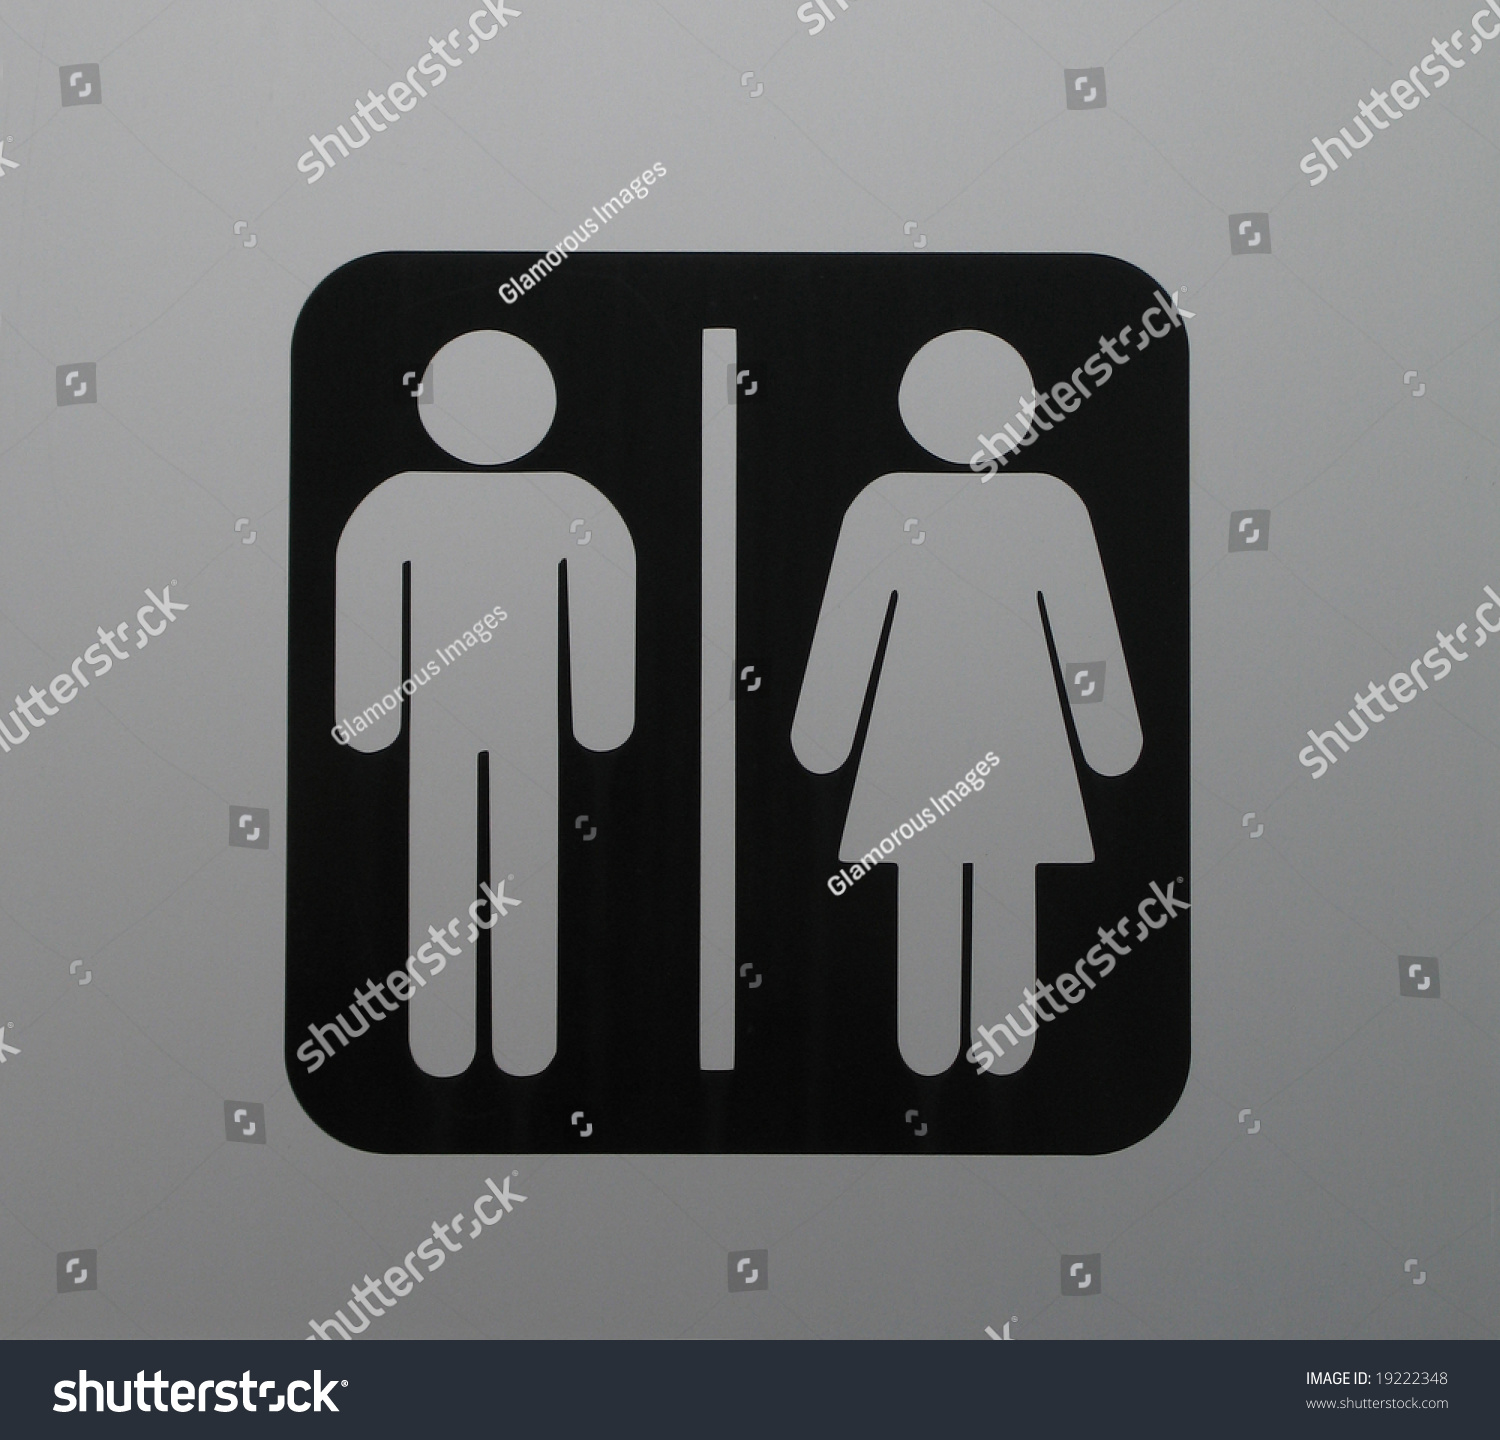 Washroom sign stock photo 19222348 shutterstock for Washroom photo